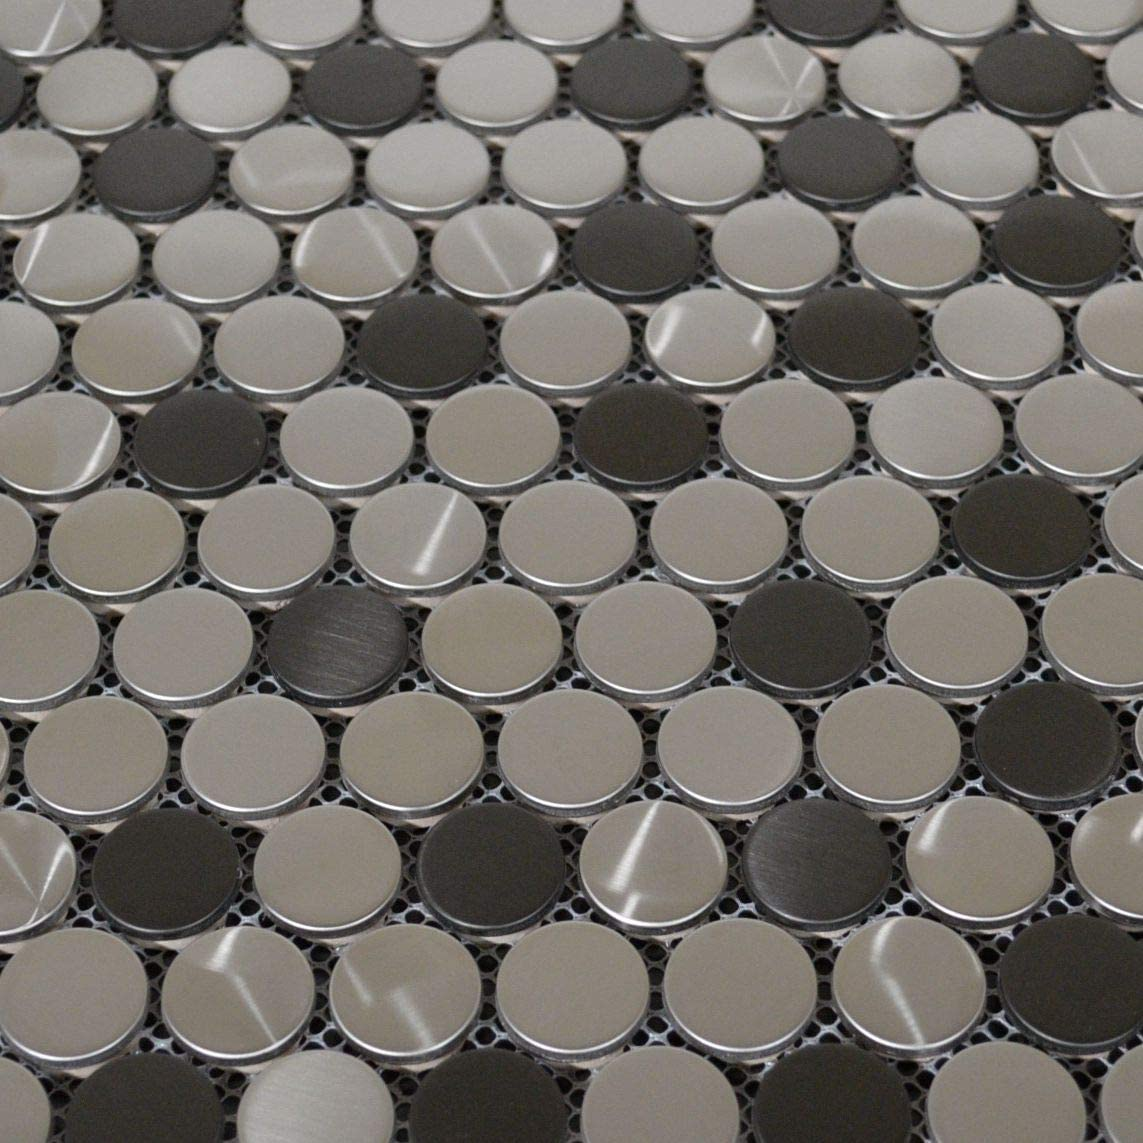 10 Sheets Penny Round Black Silver Stainless Steel Metal Mosaic Tile for Backsplash Wall